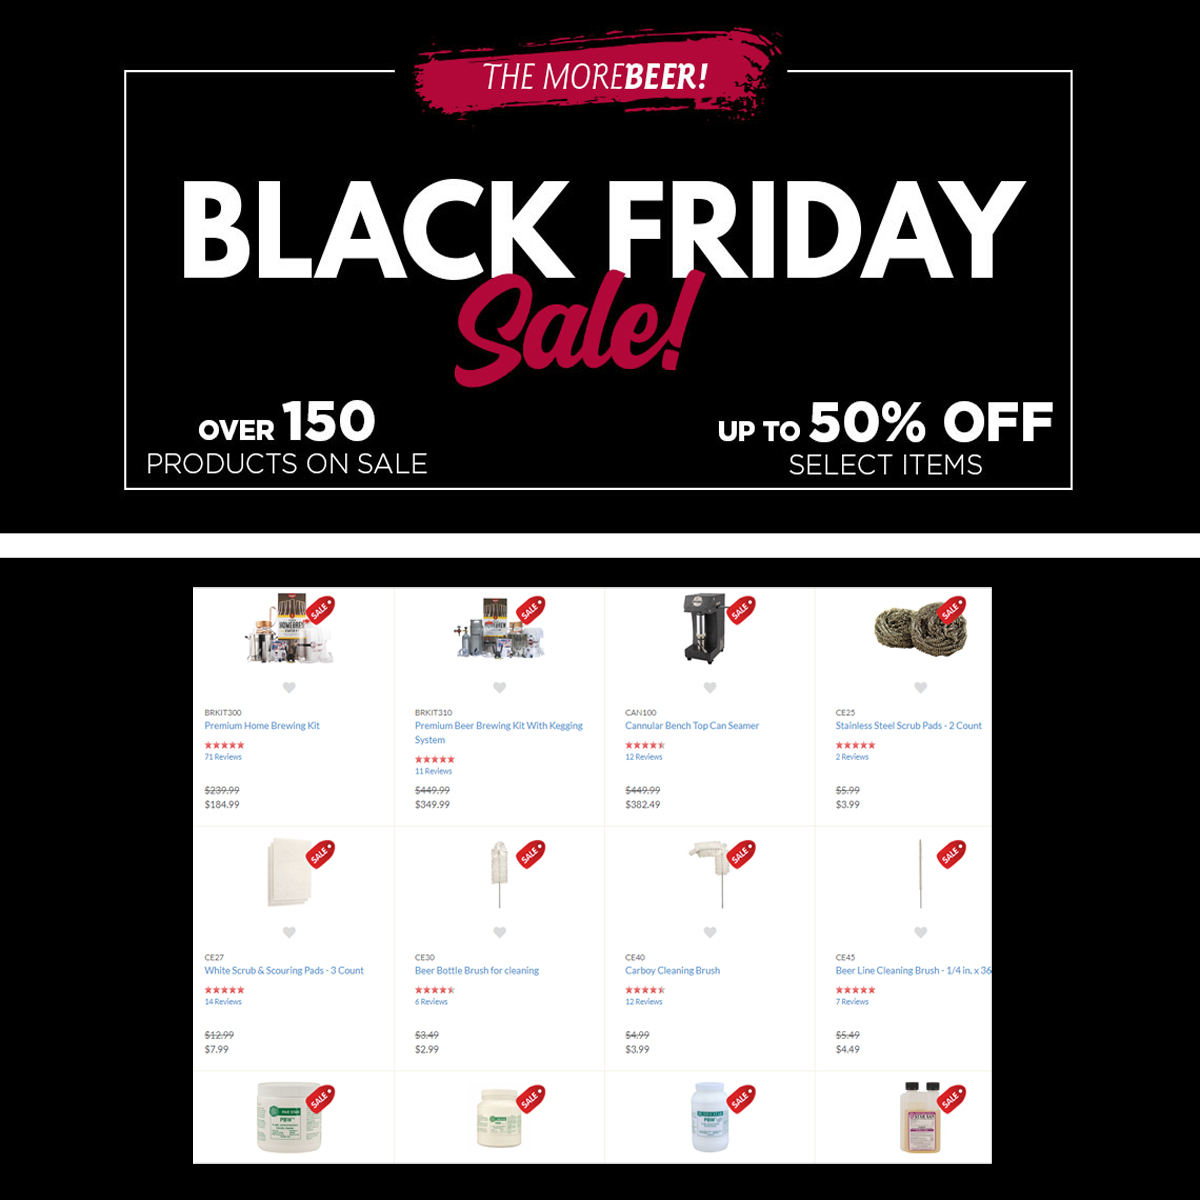 MoreBeer MoreBeer.com Black Friday Pre-Sale is going on now. Save up to 50% Coupon Code